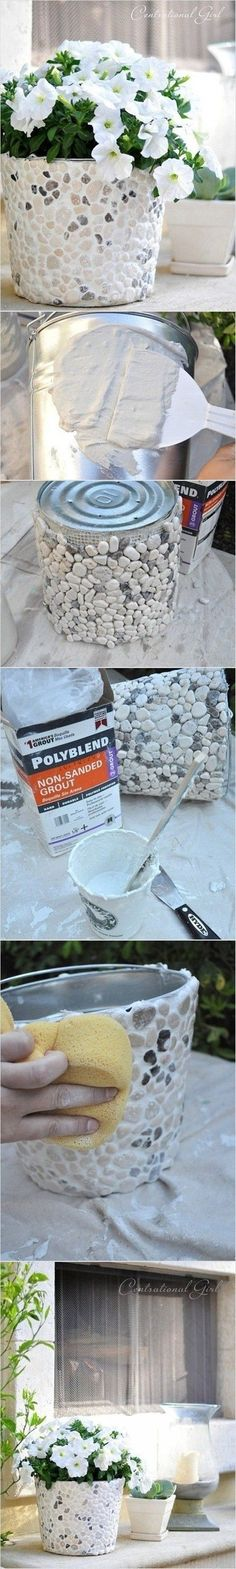 20 Cool Ways to Use Stone for DIY Projects